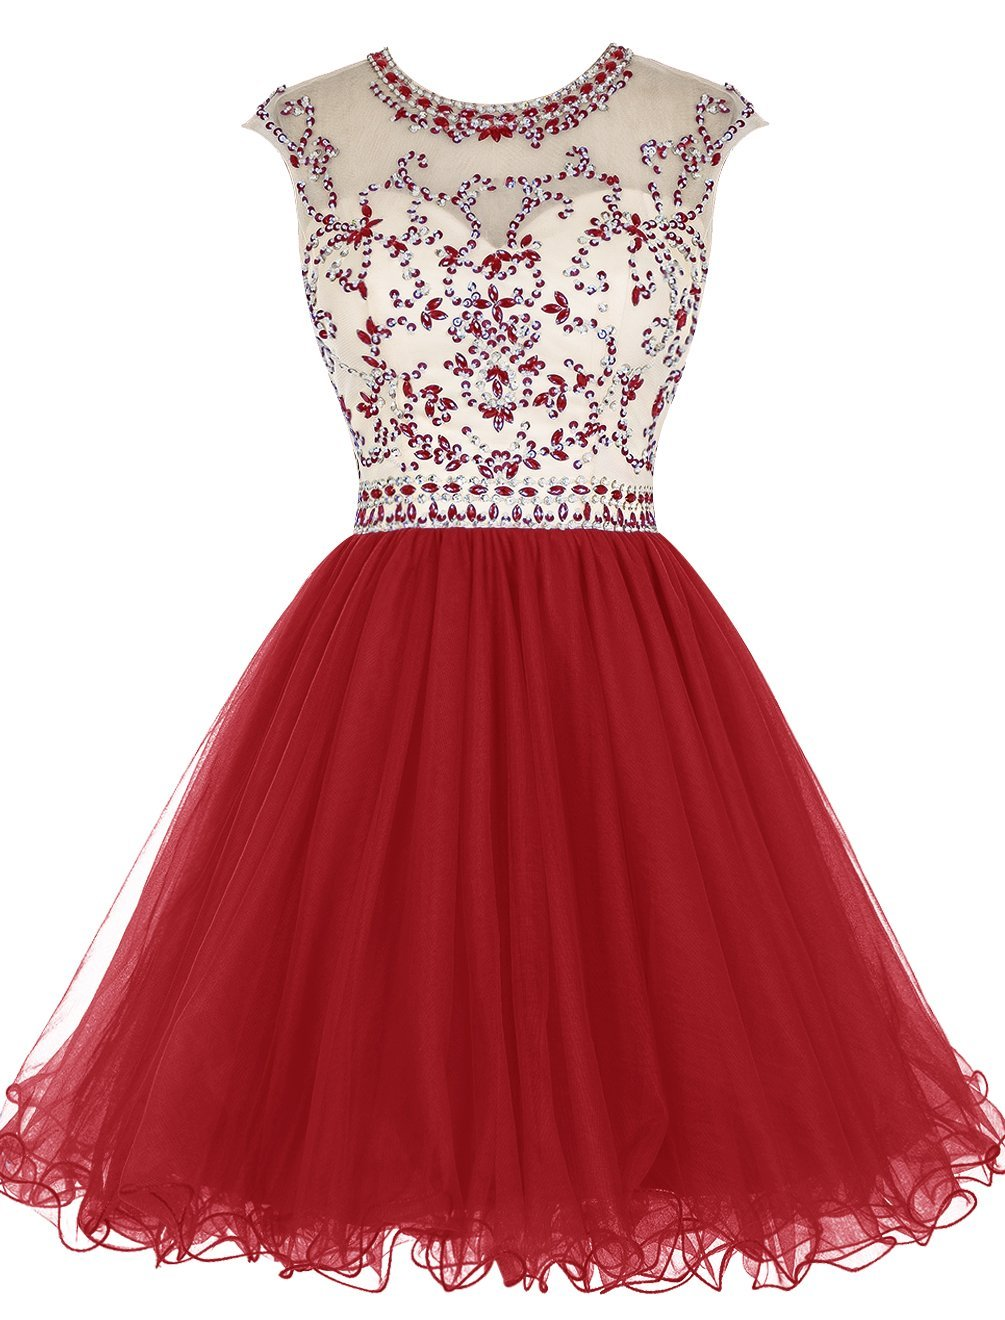 f08bfe0f34e6 Red Tulle Homecoming Dress,Beading Homecoming Dresses,Short Prom Dress